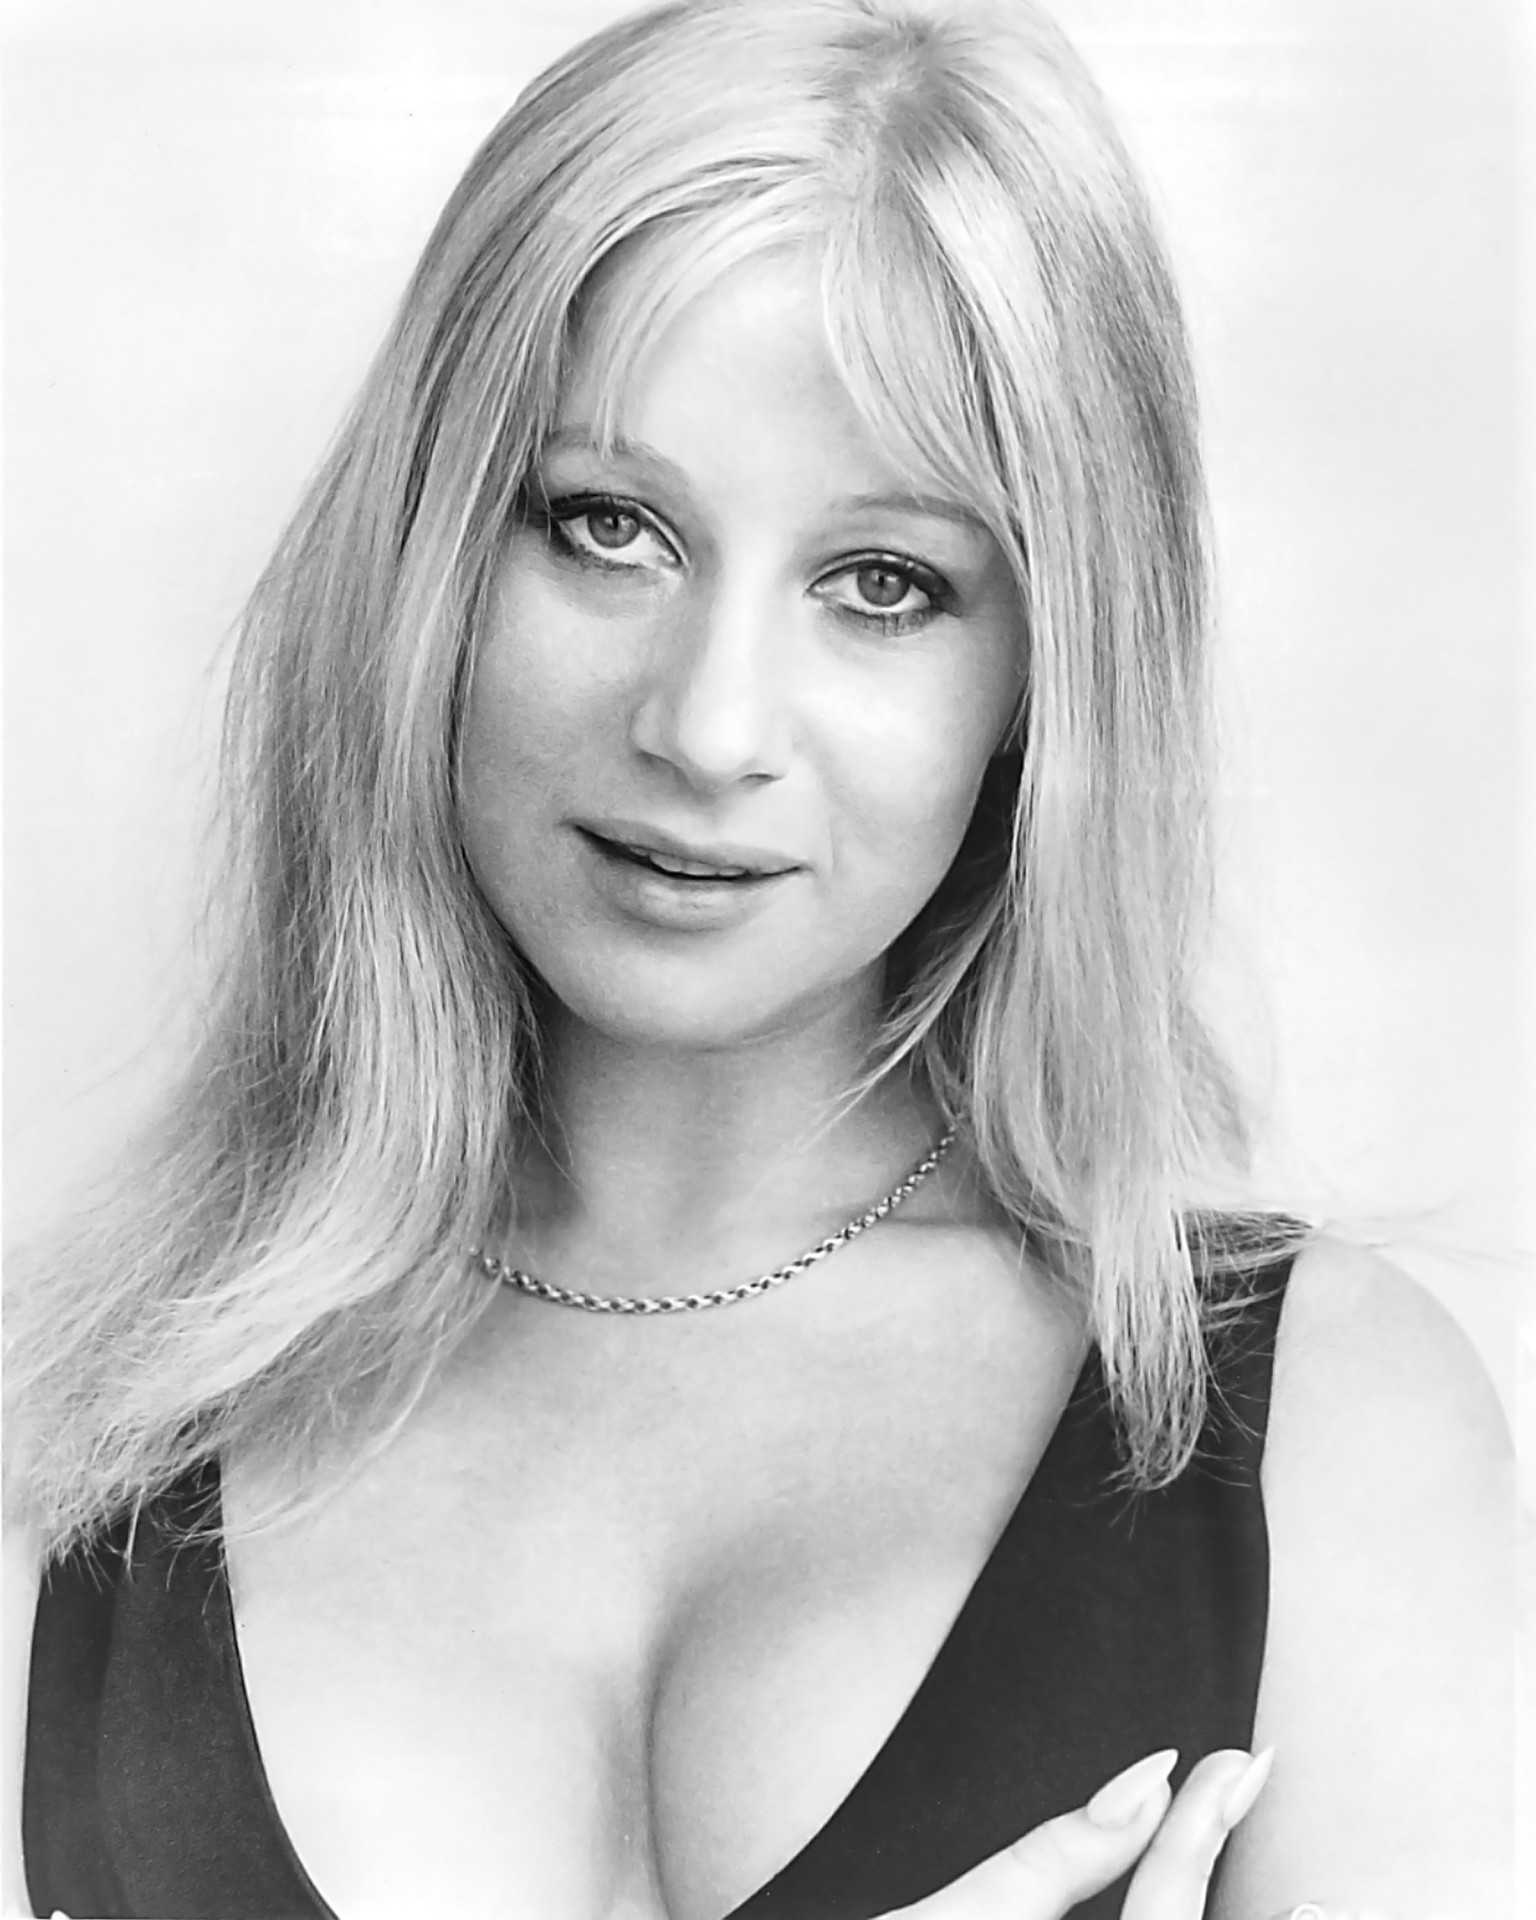 o-YOUNG-HELEN-MIRREN-facebook.jpg